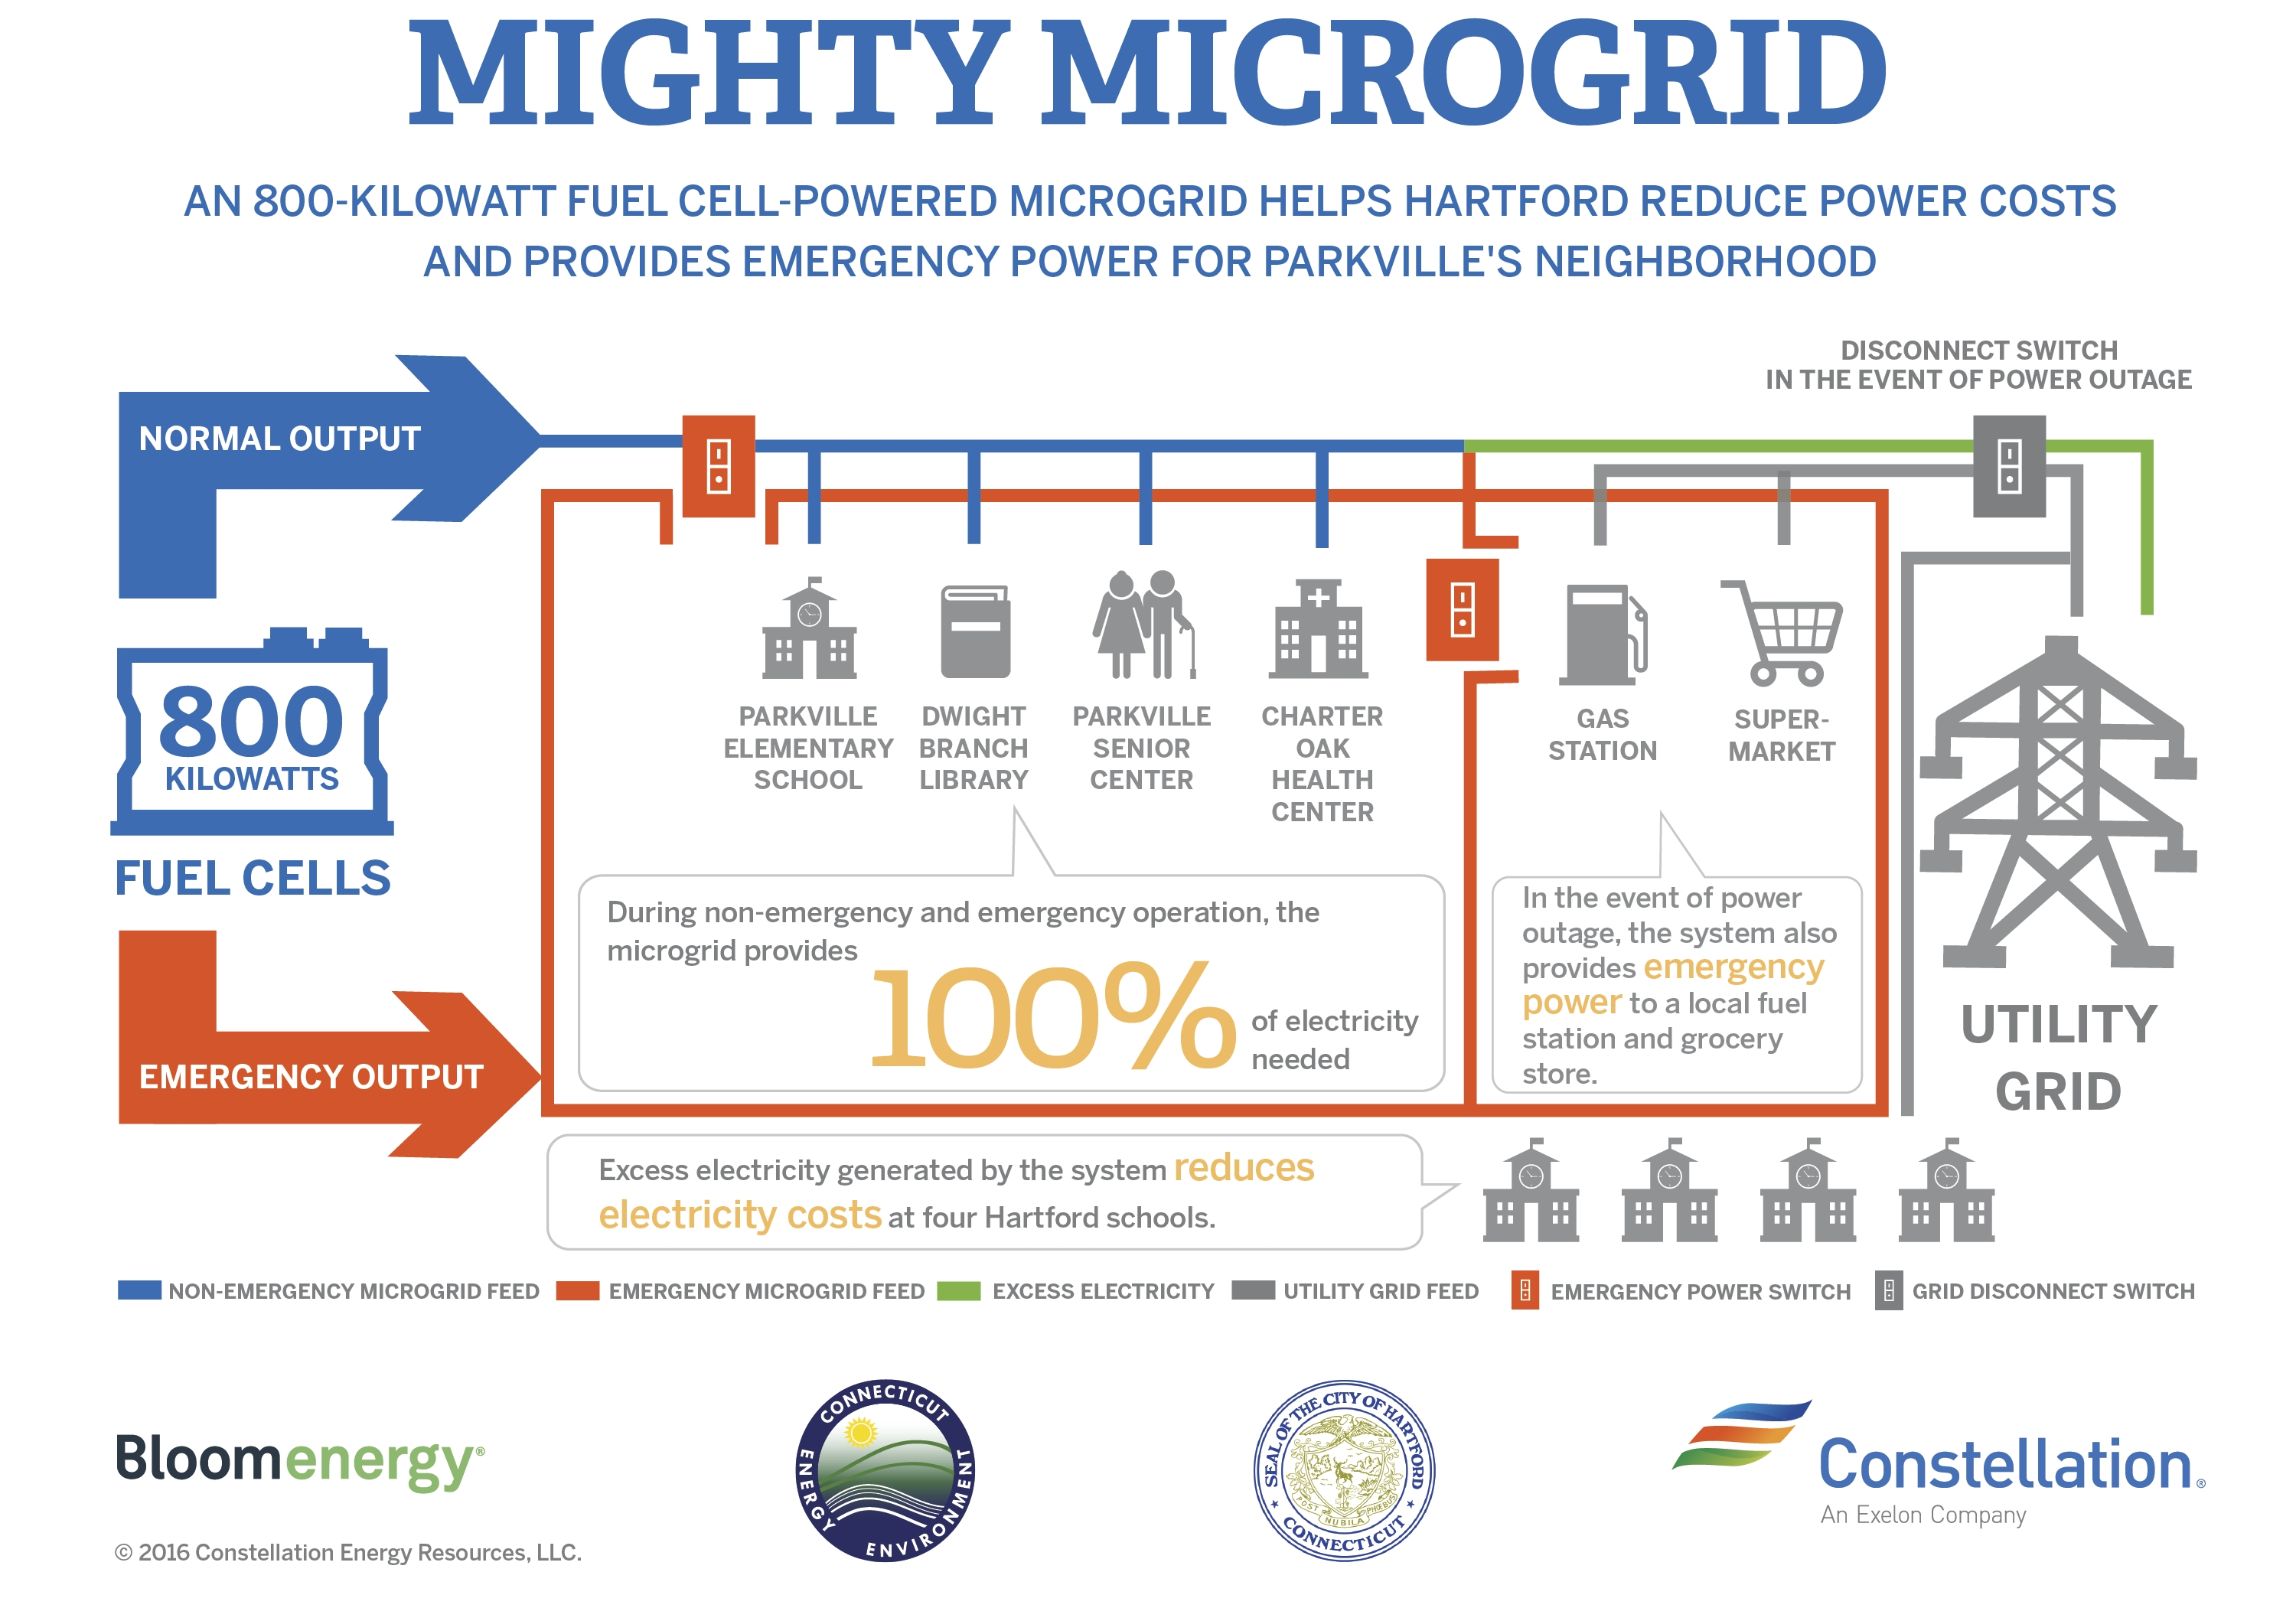 A fuel cell microgrid that will generate clean energy, manage electricity costs and supply emergency power for public buildings and businesses in Hartford's Parkville neighborhood. (Graphic: Business Wire)